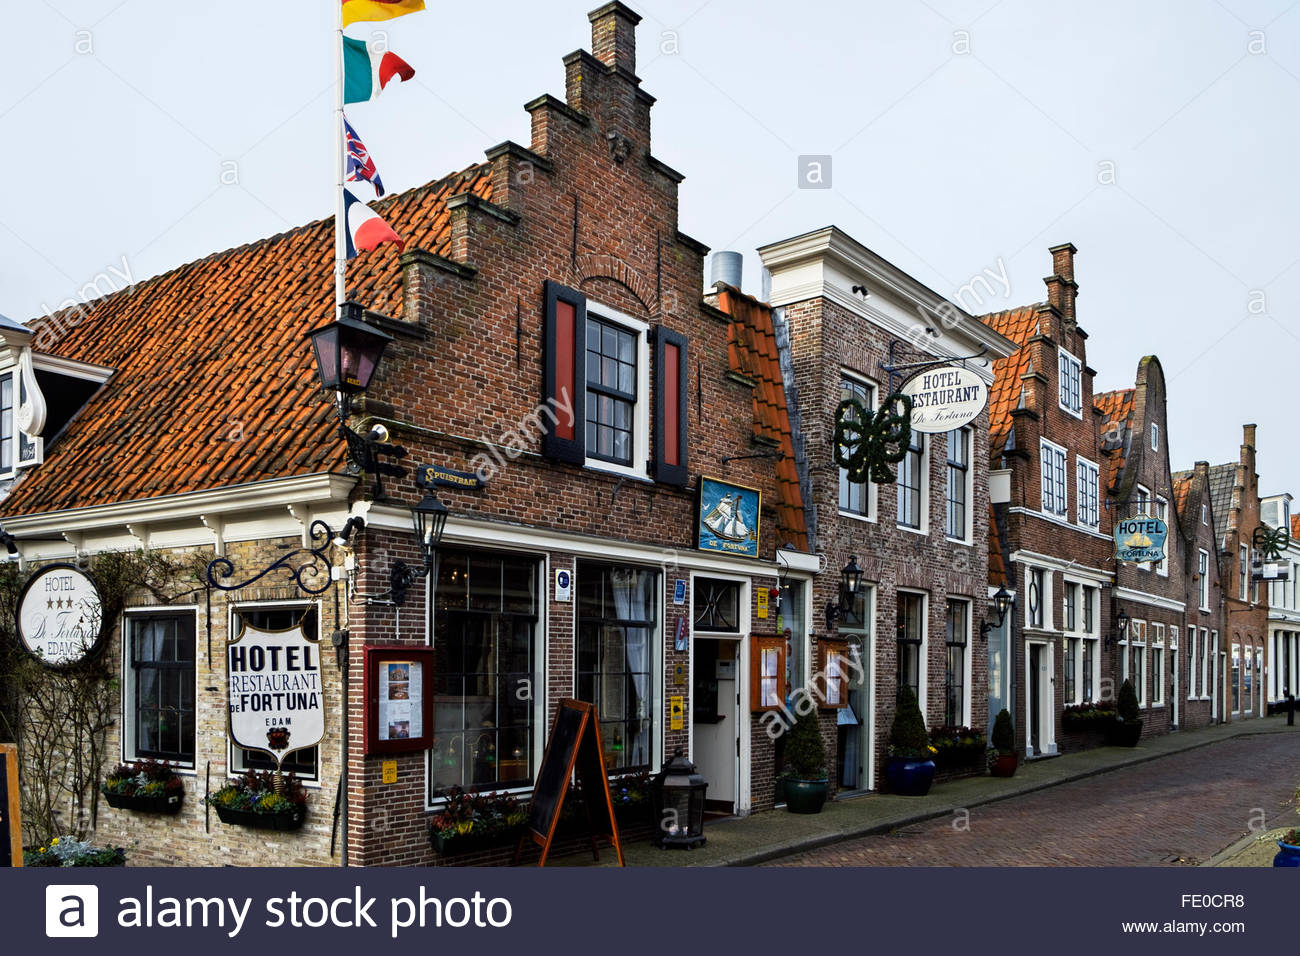 Hotel-Café-Restaurant De Fortuna is set in a 17th-century townhouse on  Spuistraat in Edam, North Holland, - Stock Image